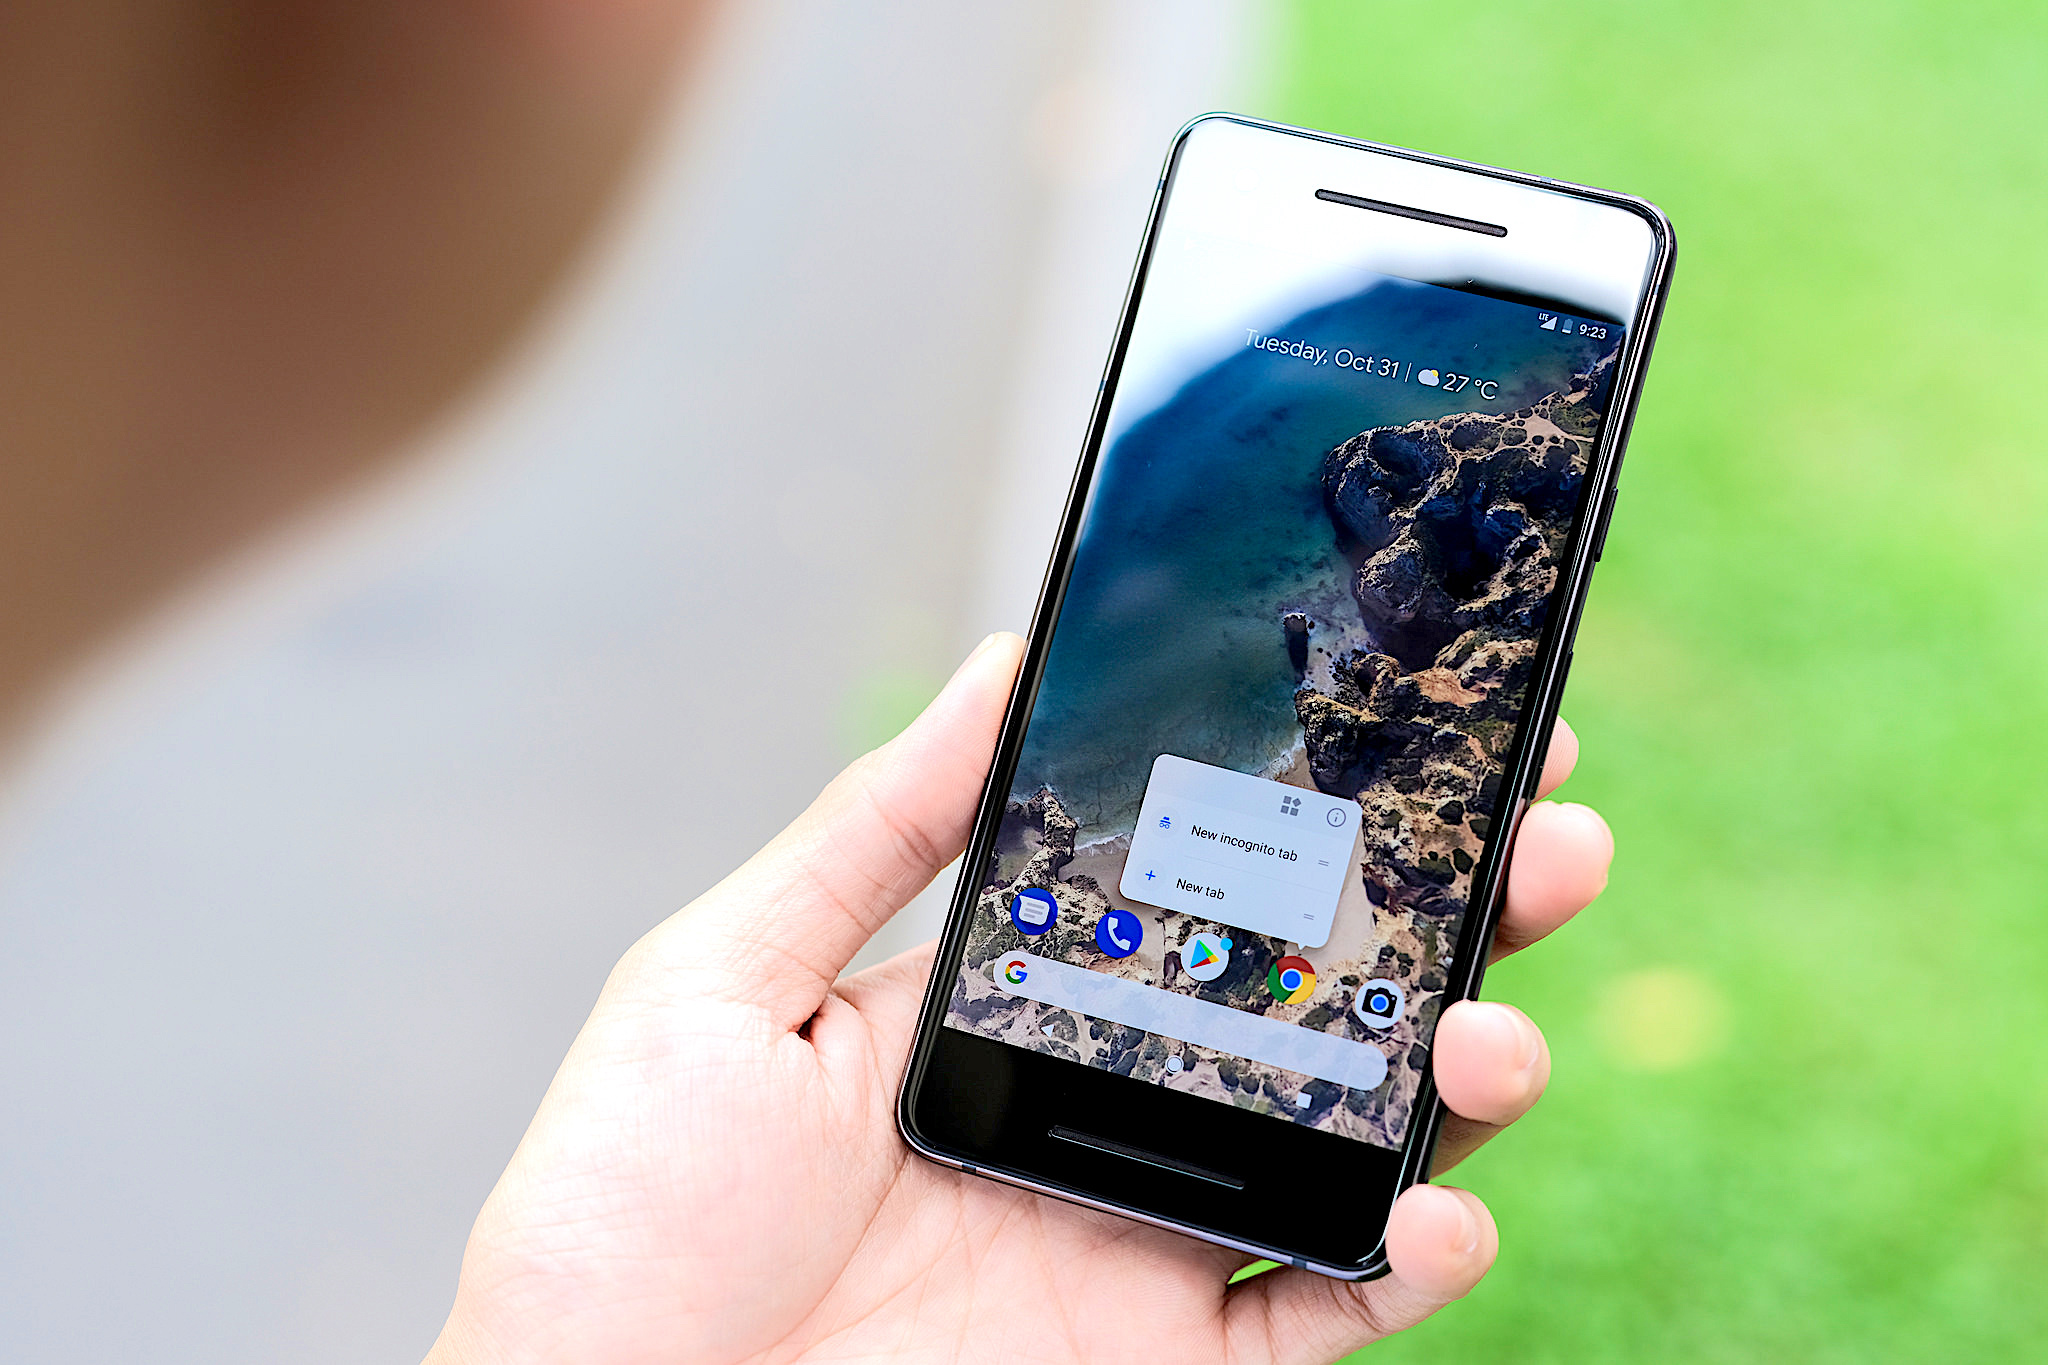 Google debuts miniaturized, real-time speech recognition AI on Pixel phones - SiliconANGLE